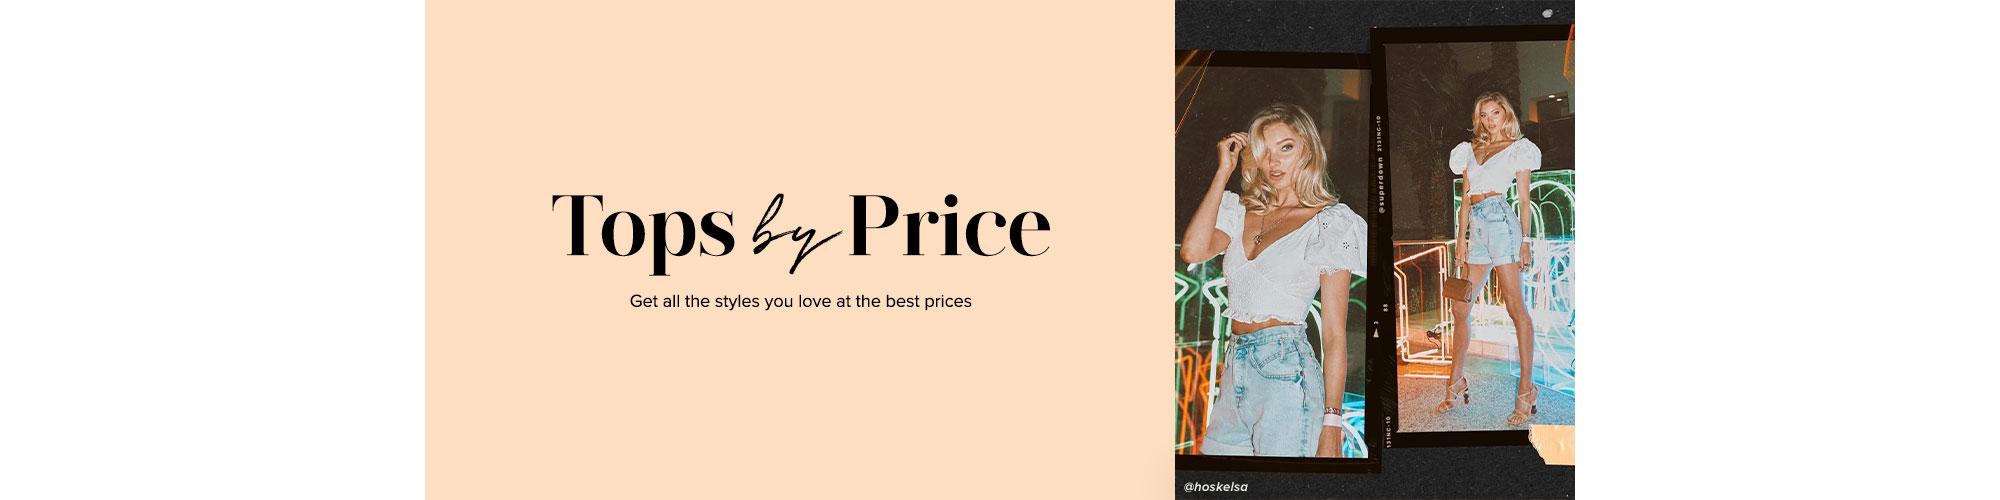 Tops by Price. Get all the styles you love at the best prices. SHOP NOW.